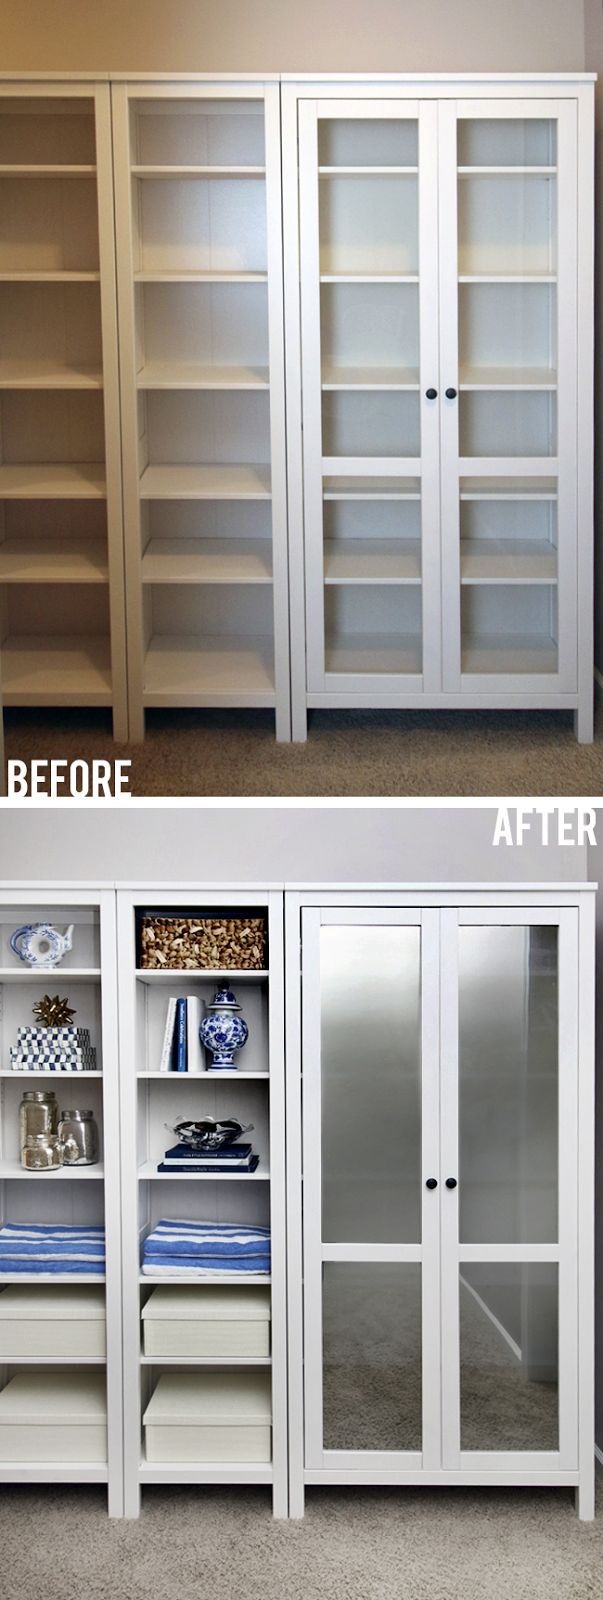 436 best images about diy on pinterest mohawk laminate for Diy mirrored kitchen cabinets